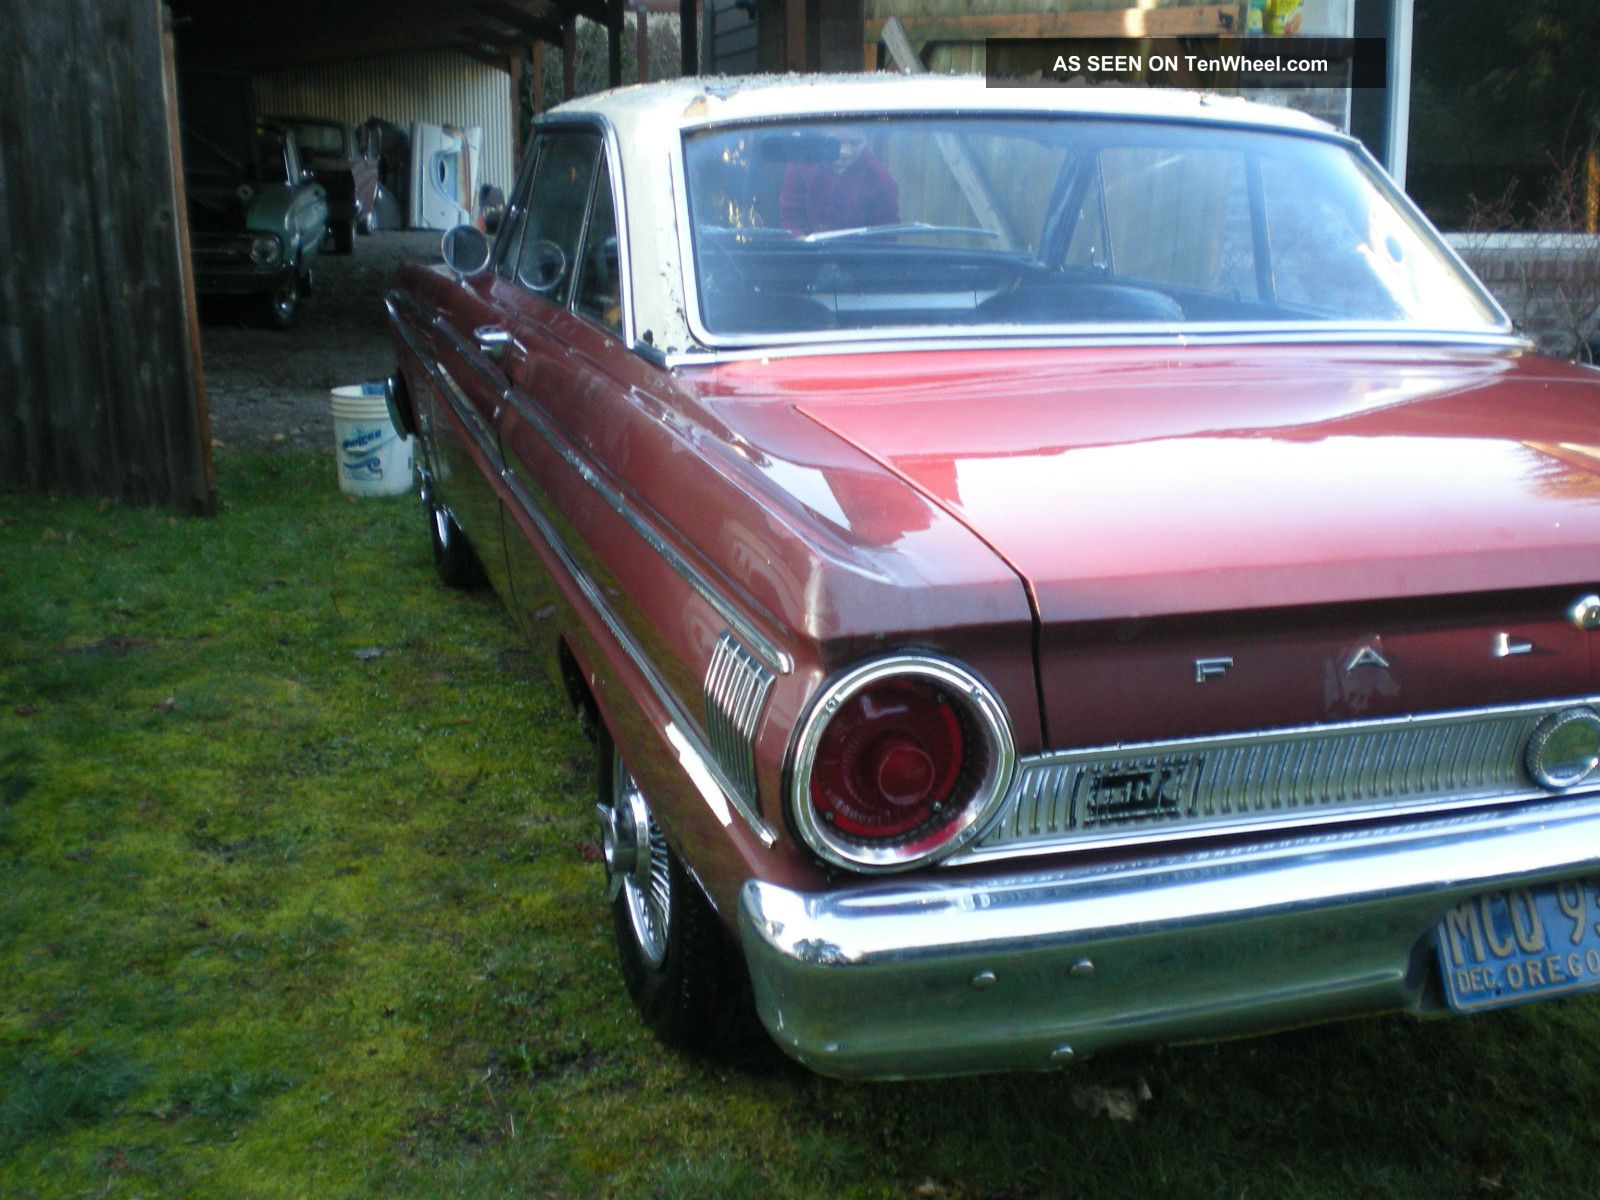 1964 Ford Falcon Sprint Hardtop Factory 4 Speed 260 Engine All Stock Very